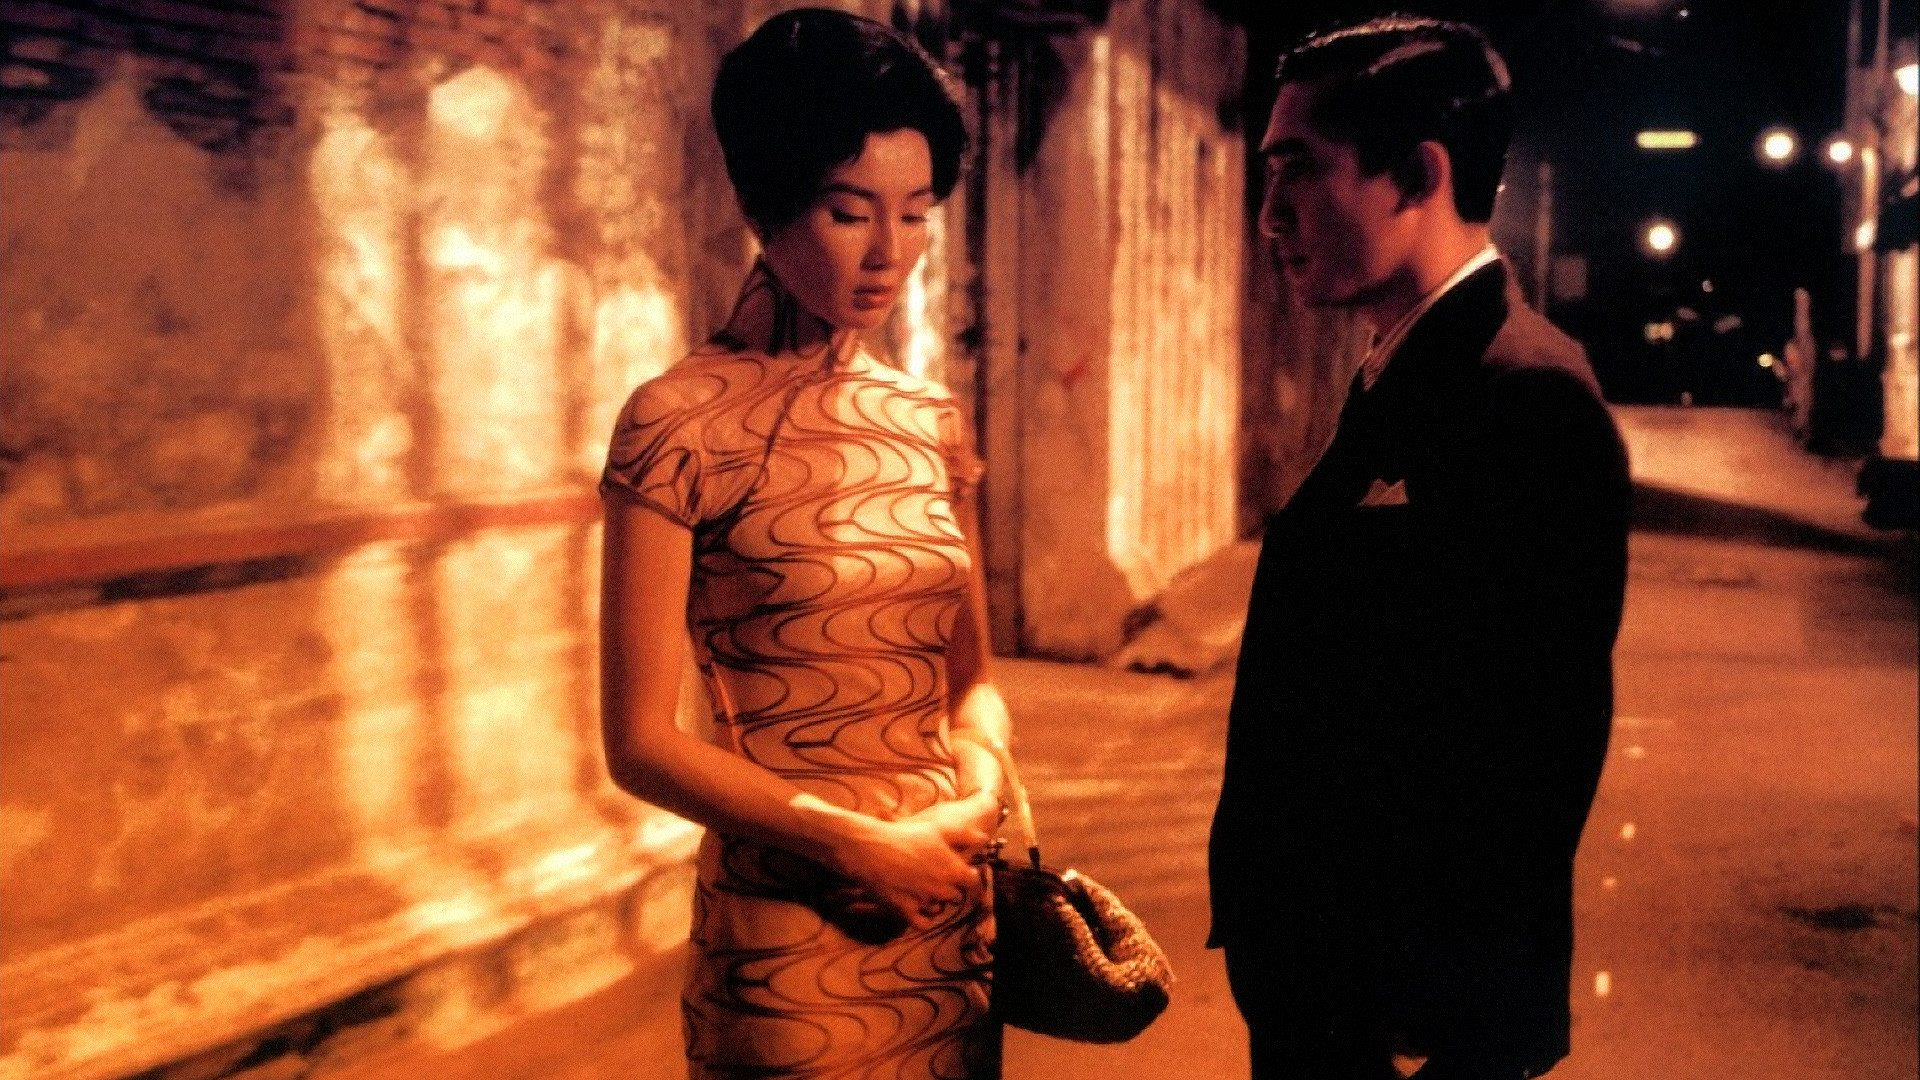 Wong Kar-wai's film In the Mood for Love. Image via: Universal Studios